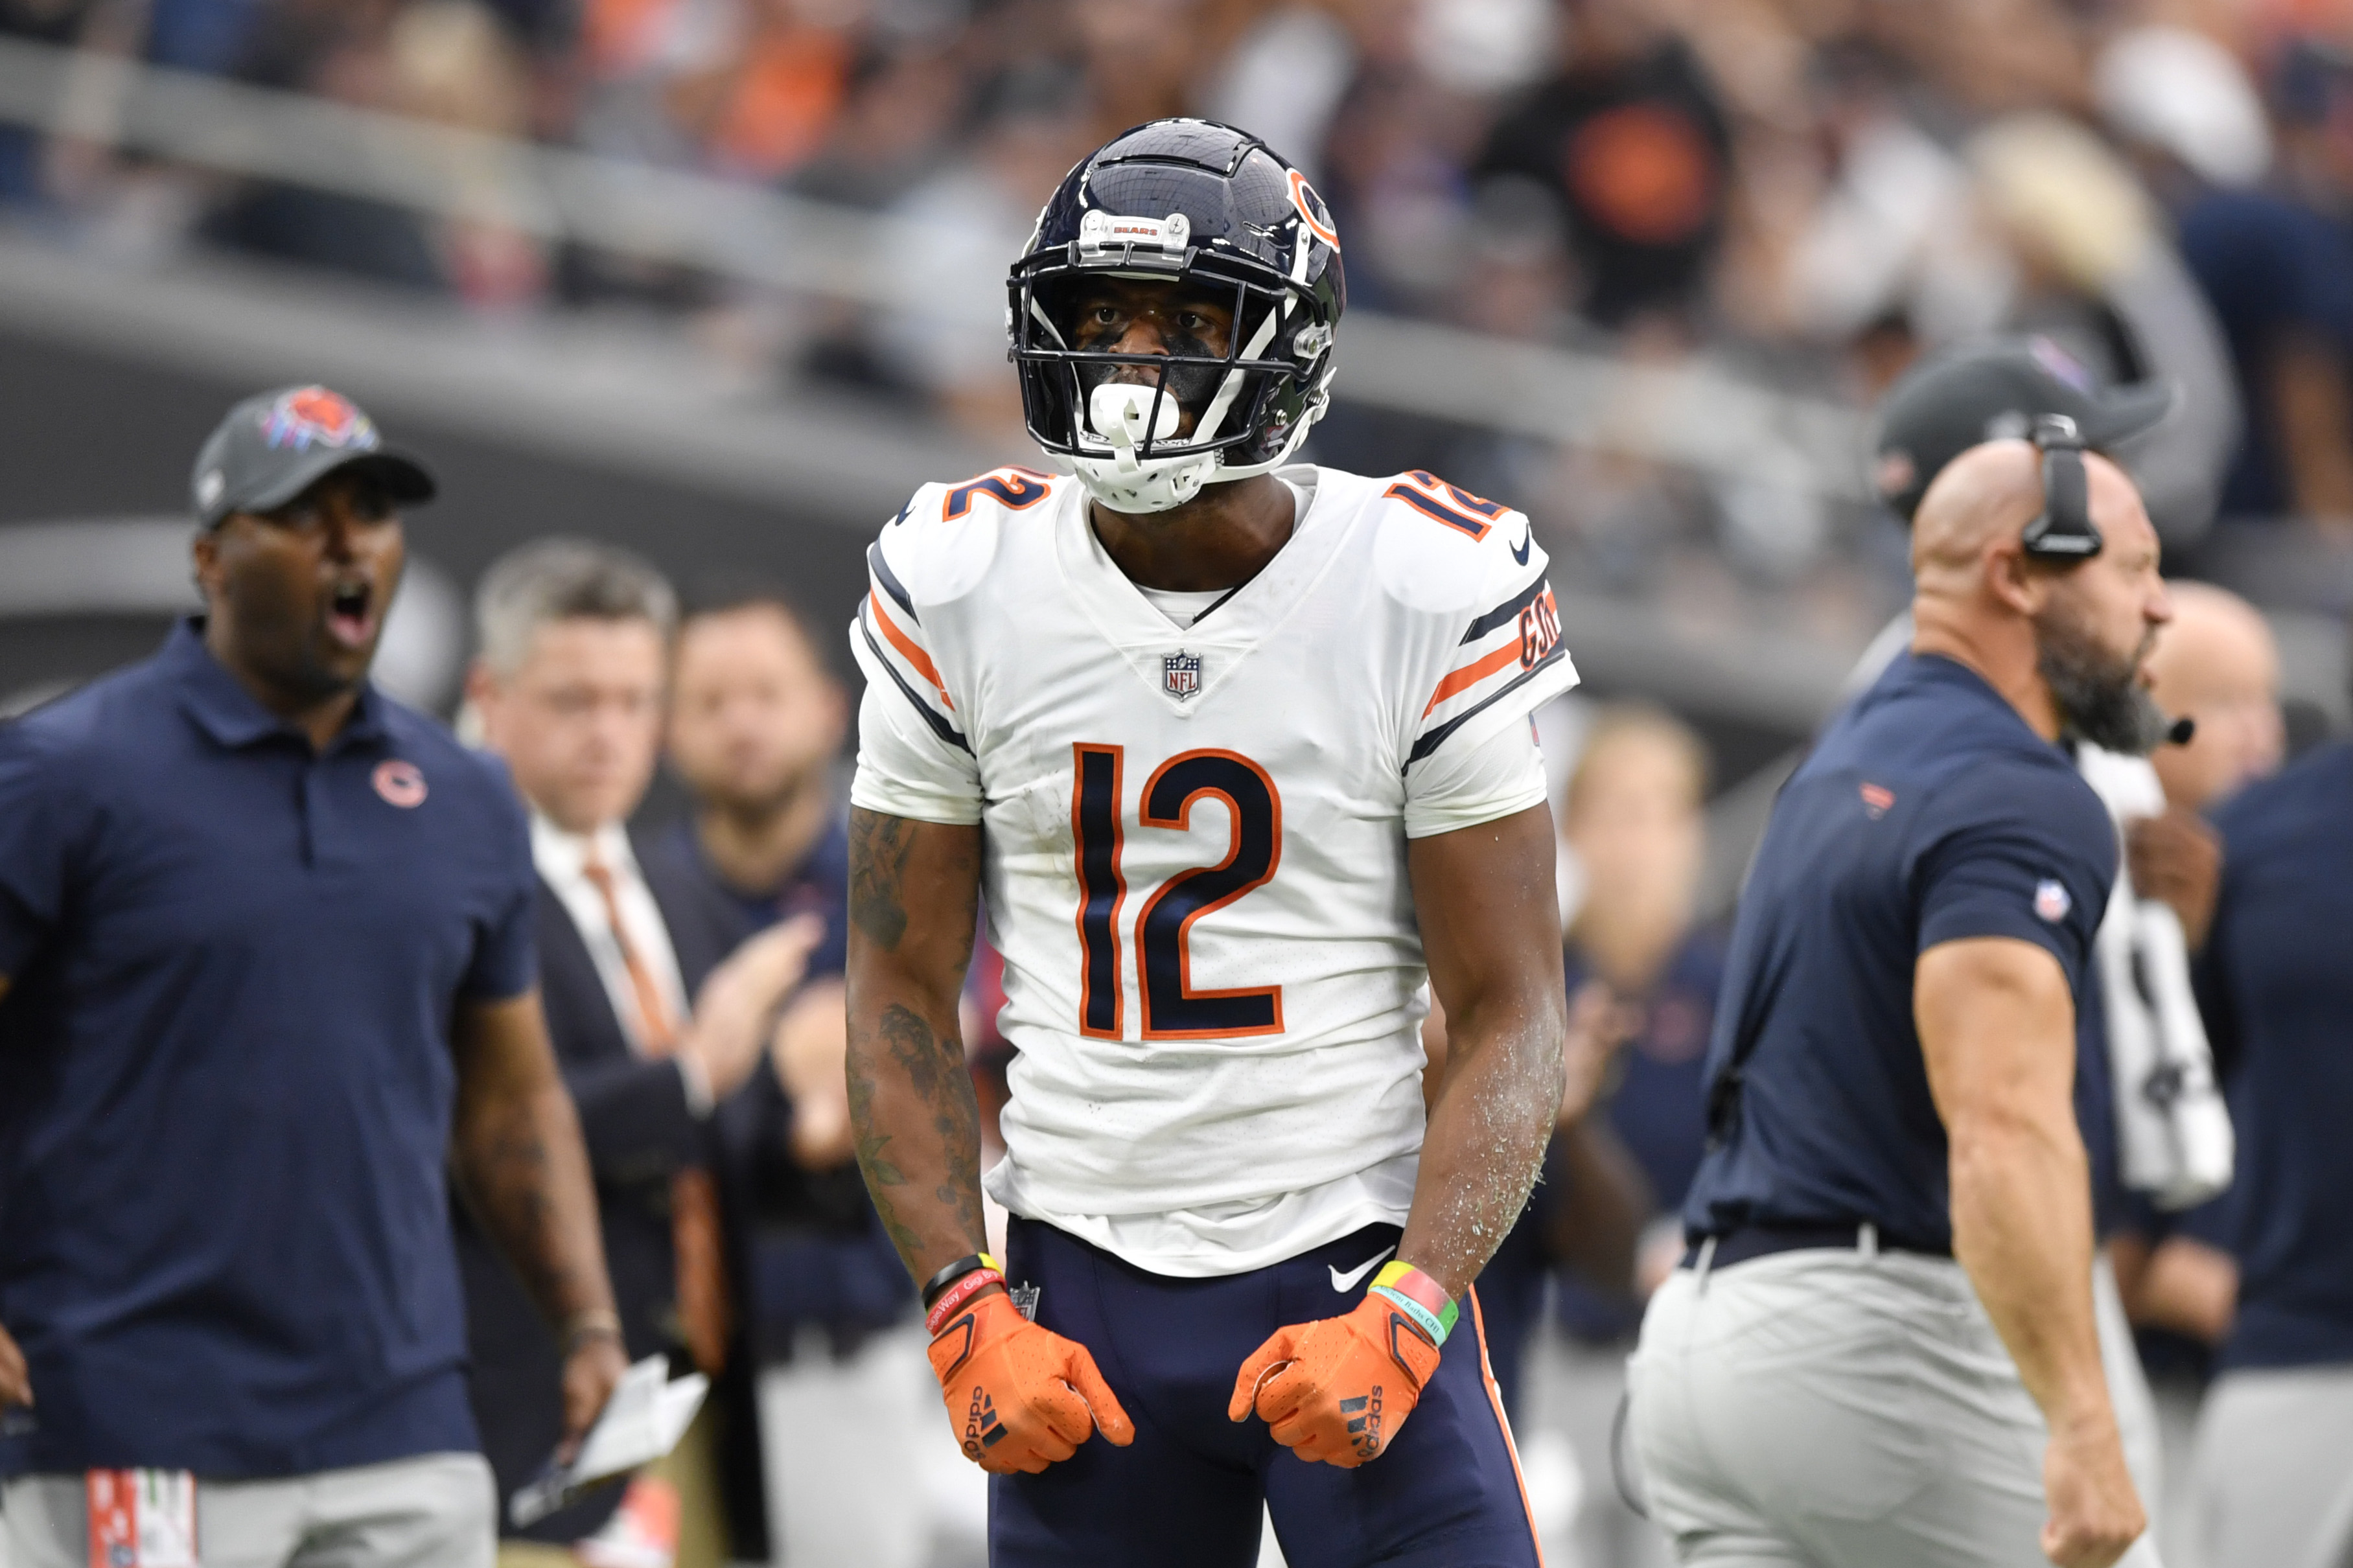 Wide receiver Allen Robinson #12 of the Chicago Bears reacts after his catch for a first down against the Las Vegas Raiders during the first half of a game at Allegiant Stadium on October 10, 2021 in Las Vegas, Nevada.